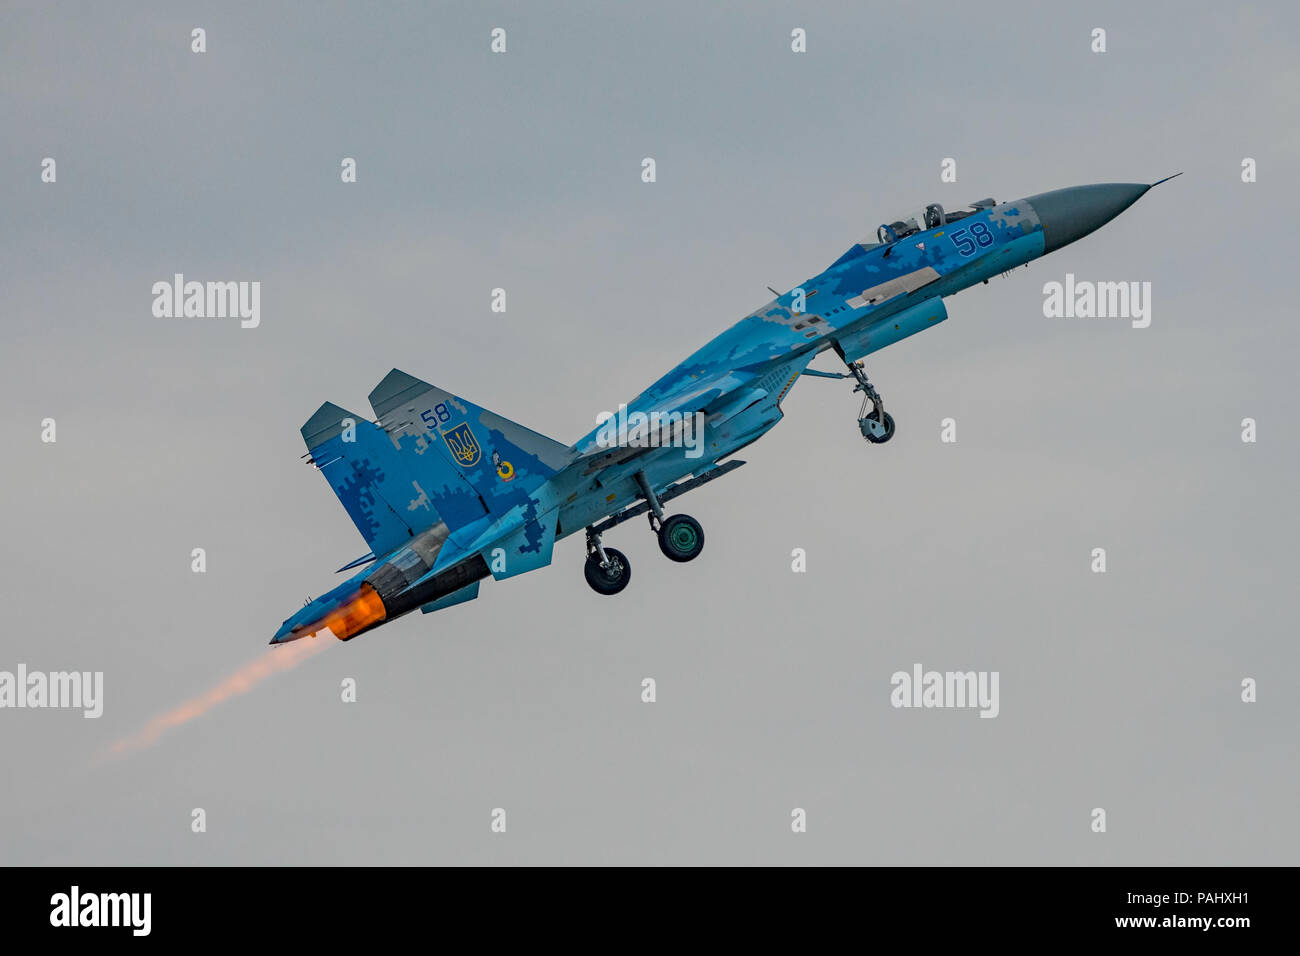 Sukhoi Su-27P 'Flanker' of the Ukrainian Air Force displaying at the Royal International Air Tattoo, RAF Fairford, UK on the 13th July 2018. - Stock Image